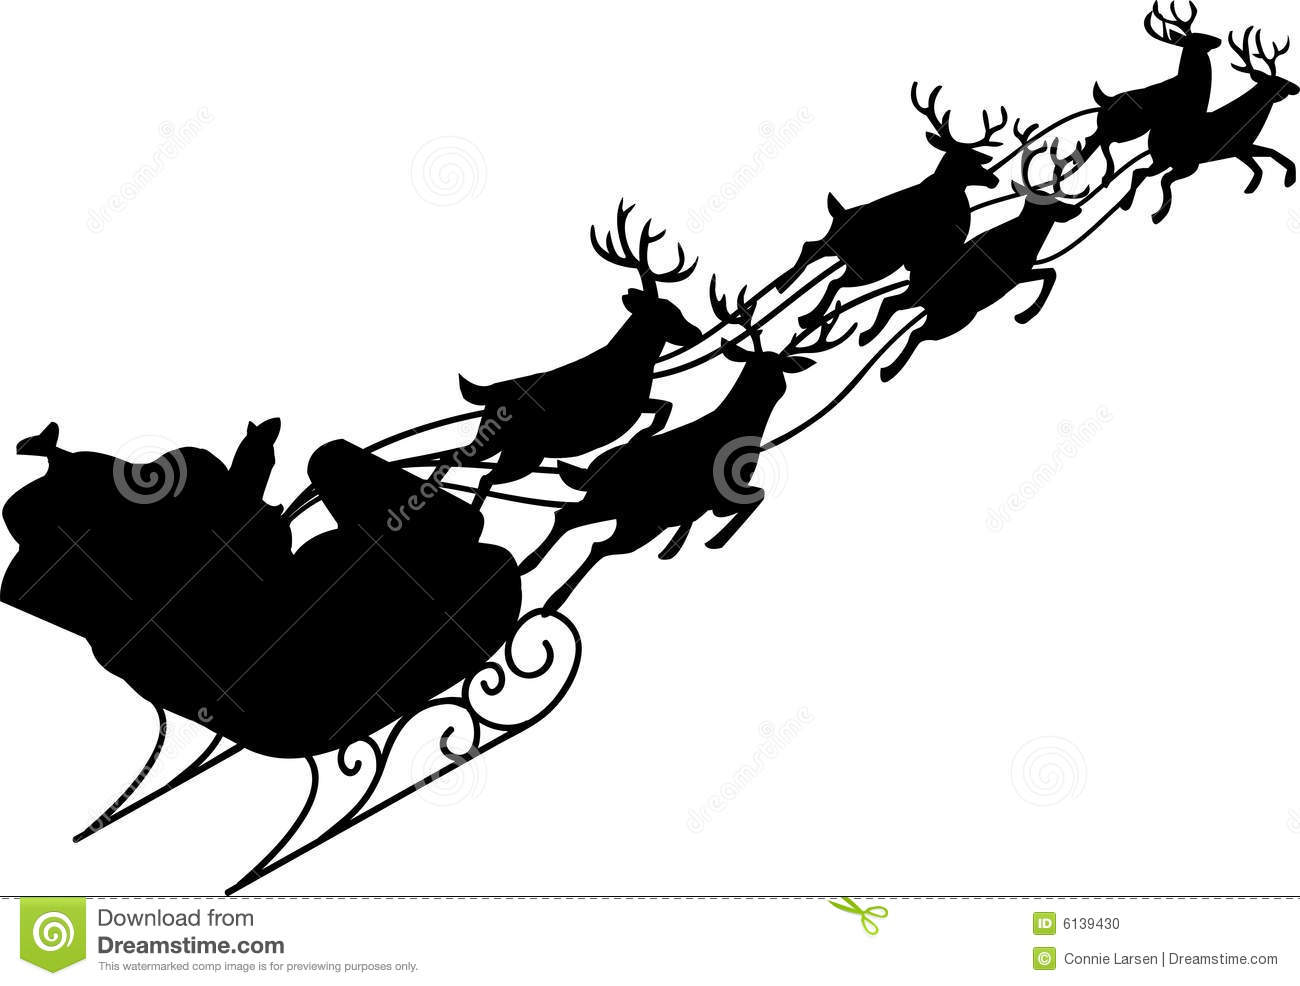 Illustration of Santa and his reindeer sleigh in silhouette.